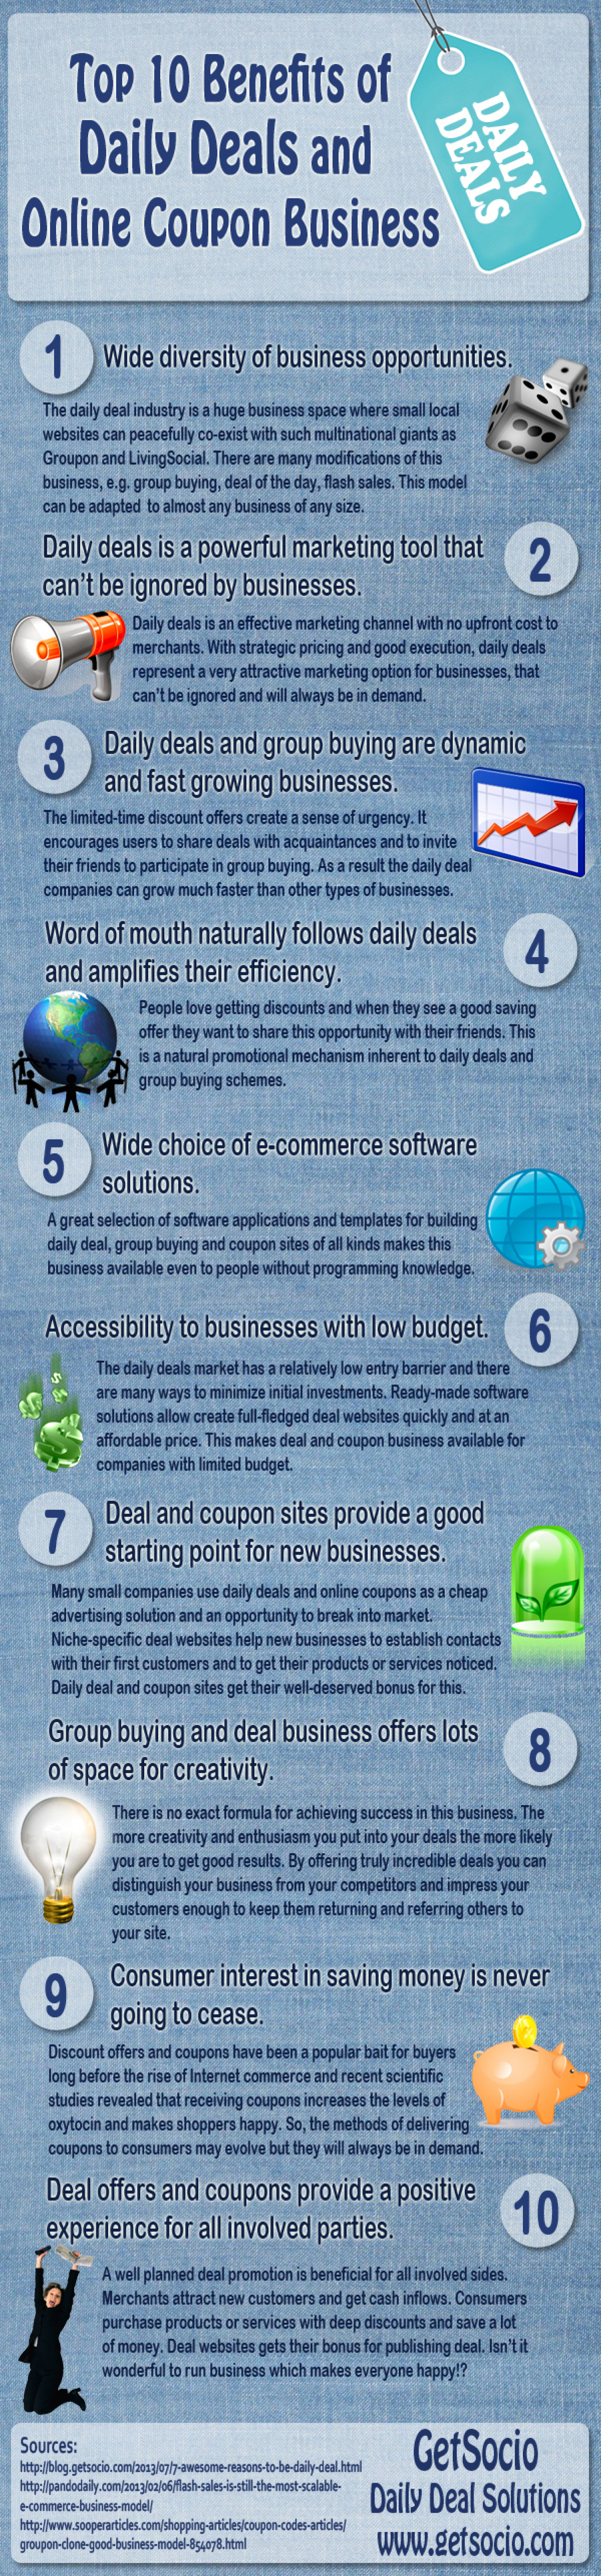 Top 10 Benefits of Daily Deals and Online Coupon Business Infographic